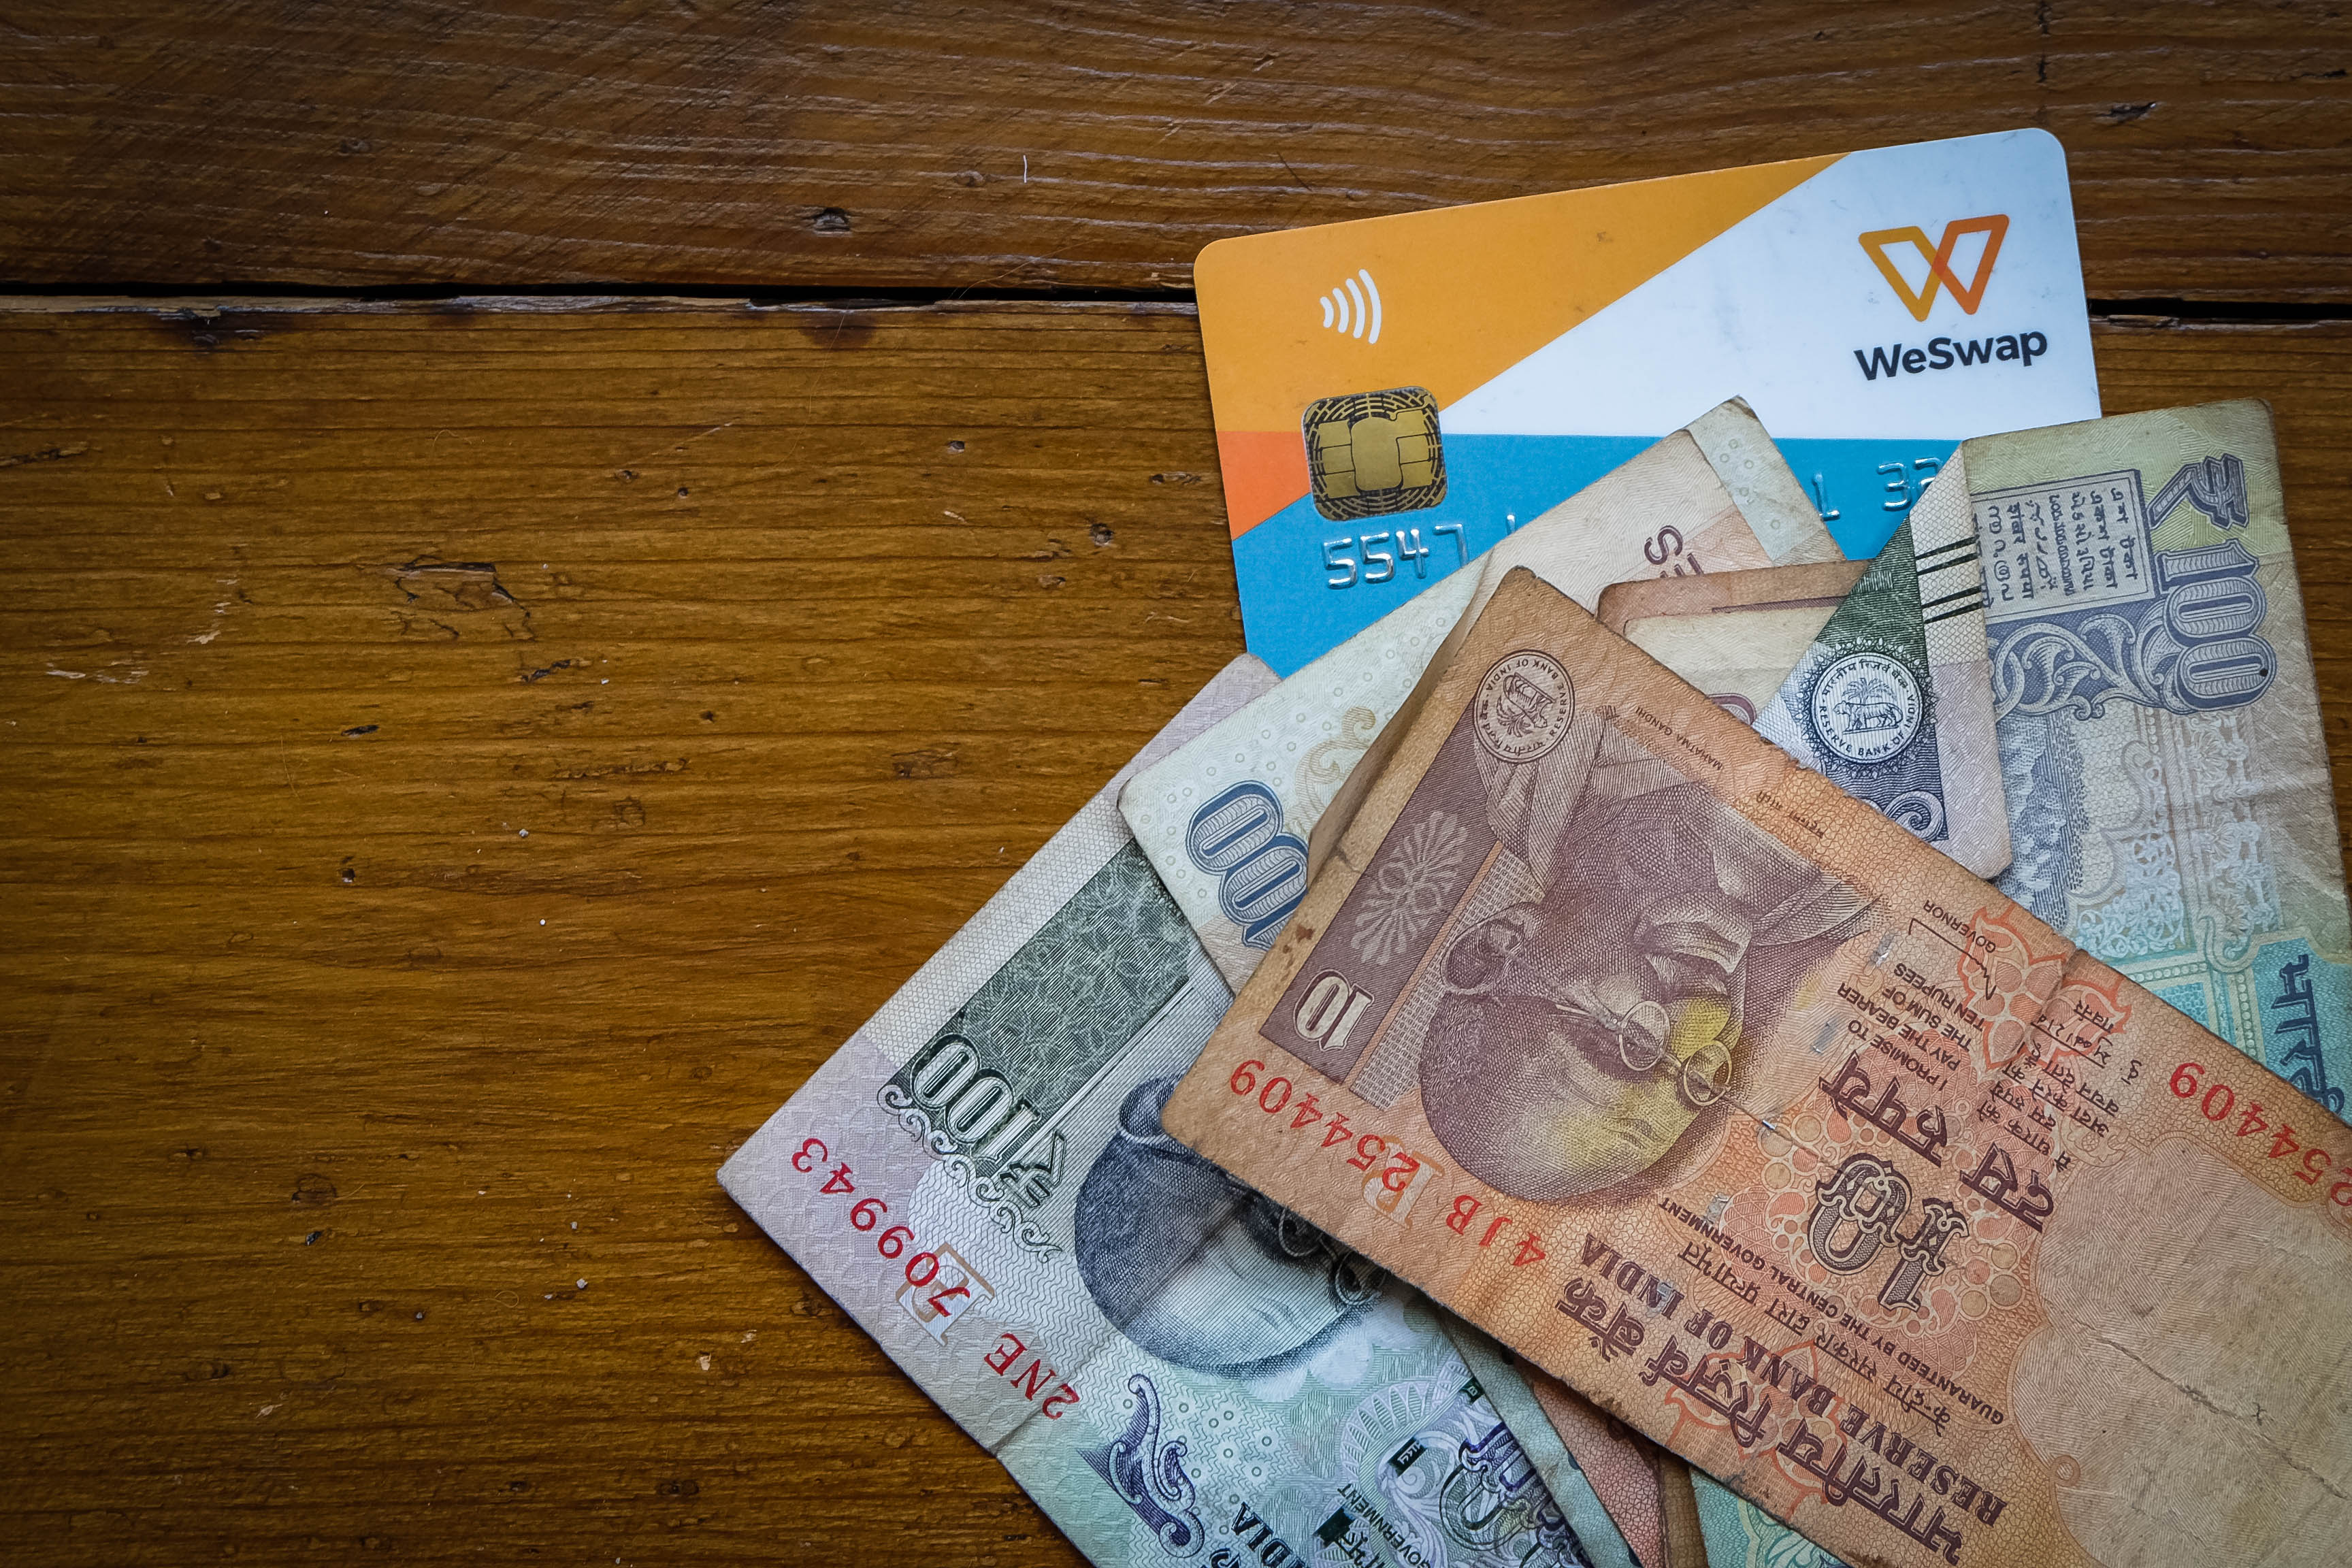 WeSwap currency card on a table with Indian Rupee notes